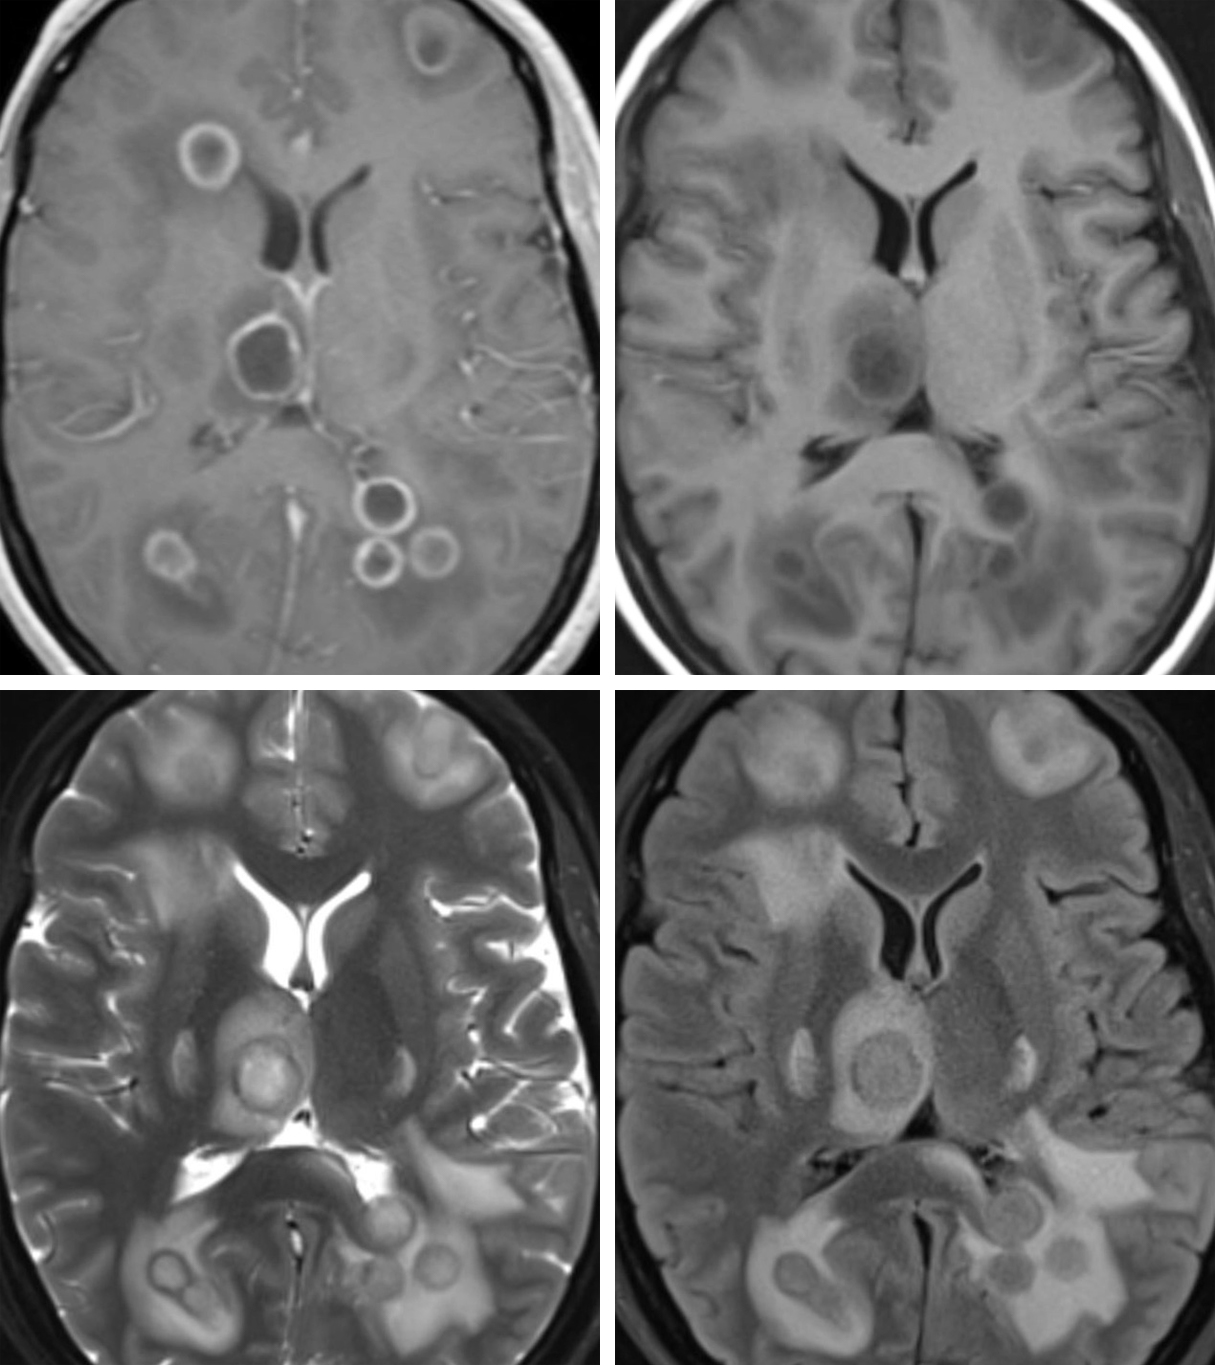 Figure 1: Post-contrast T1 weighted image (top row left) demonstrates multiple supratentorial ring-enhancing lesions with a thin capsule consistent with Early Capsule stage. Not shown here – the side of the capsule that is nearest a ventricle is often thinner, making it prone to rupture with intraventricular extension causing life-threatening ventriculitis or development of satellite abscesses. Prior to the administration of contrast, the abscesses (top row right) are less conspicuous, only visible as hypointense lesions with slightly less dark surrounding edema. The capsule itself is often mildly hyperintense. The T2-weighted image (bottom row left) from this same patient illustrates the high signal-intensity necrotic center and high-signal surrounding vasogenic edema typical of abscesses. The capsule is low signal, which is believed to be due to alteration of the local magnetic field by high concentrations of oxygen free radicals. The findings on FLAIR (bottom row right) are similar to those on T2: high signal necrotic center and surrounding vasogenic edema. Not shown here – Spread of infection into the ventricles or extra-axial CSF spaces may result in incomplete suppression of fluid signal leading to subtly abnormally increased signal of the intraventricular CSF.